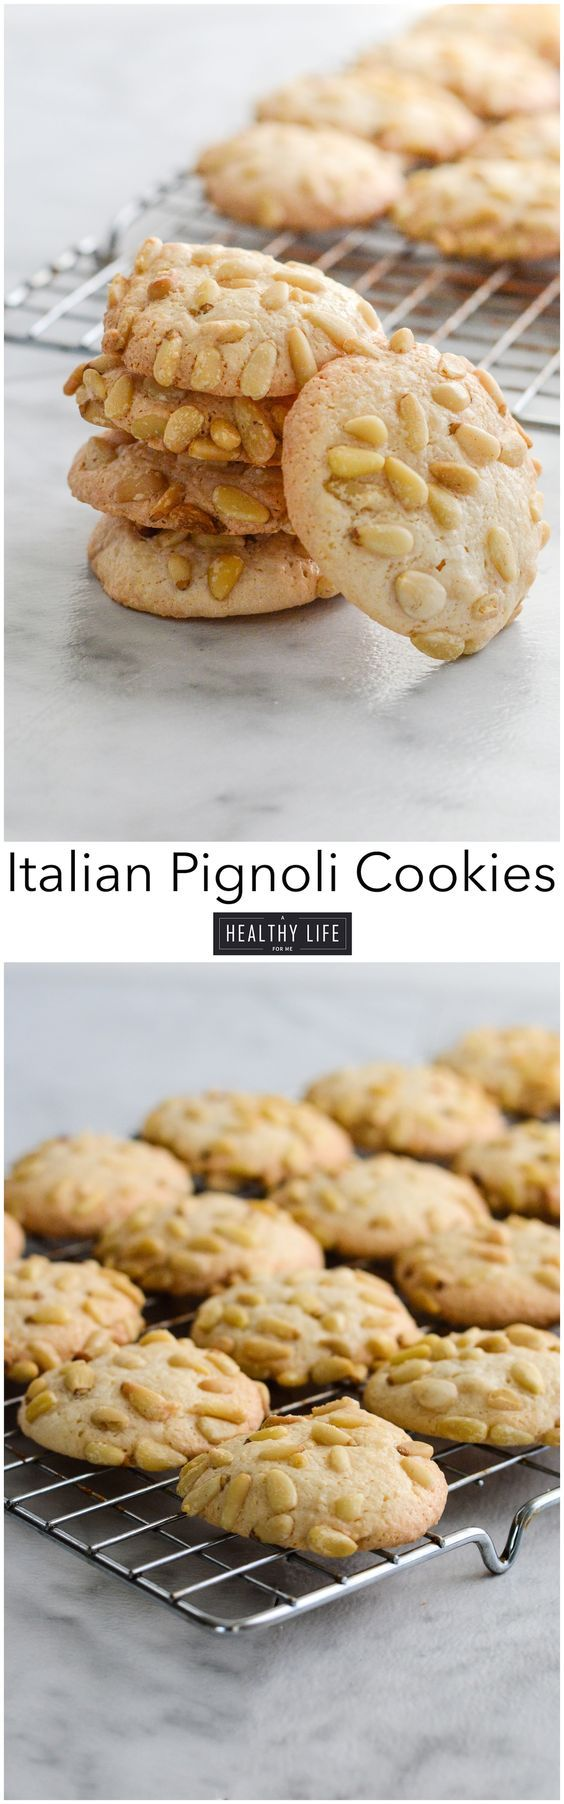 Italian Pignoli Cookies | Recipe